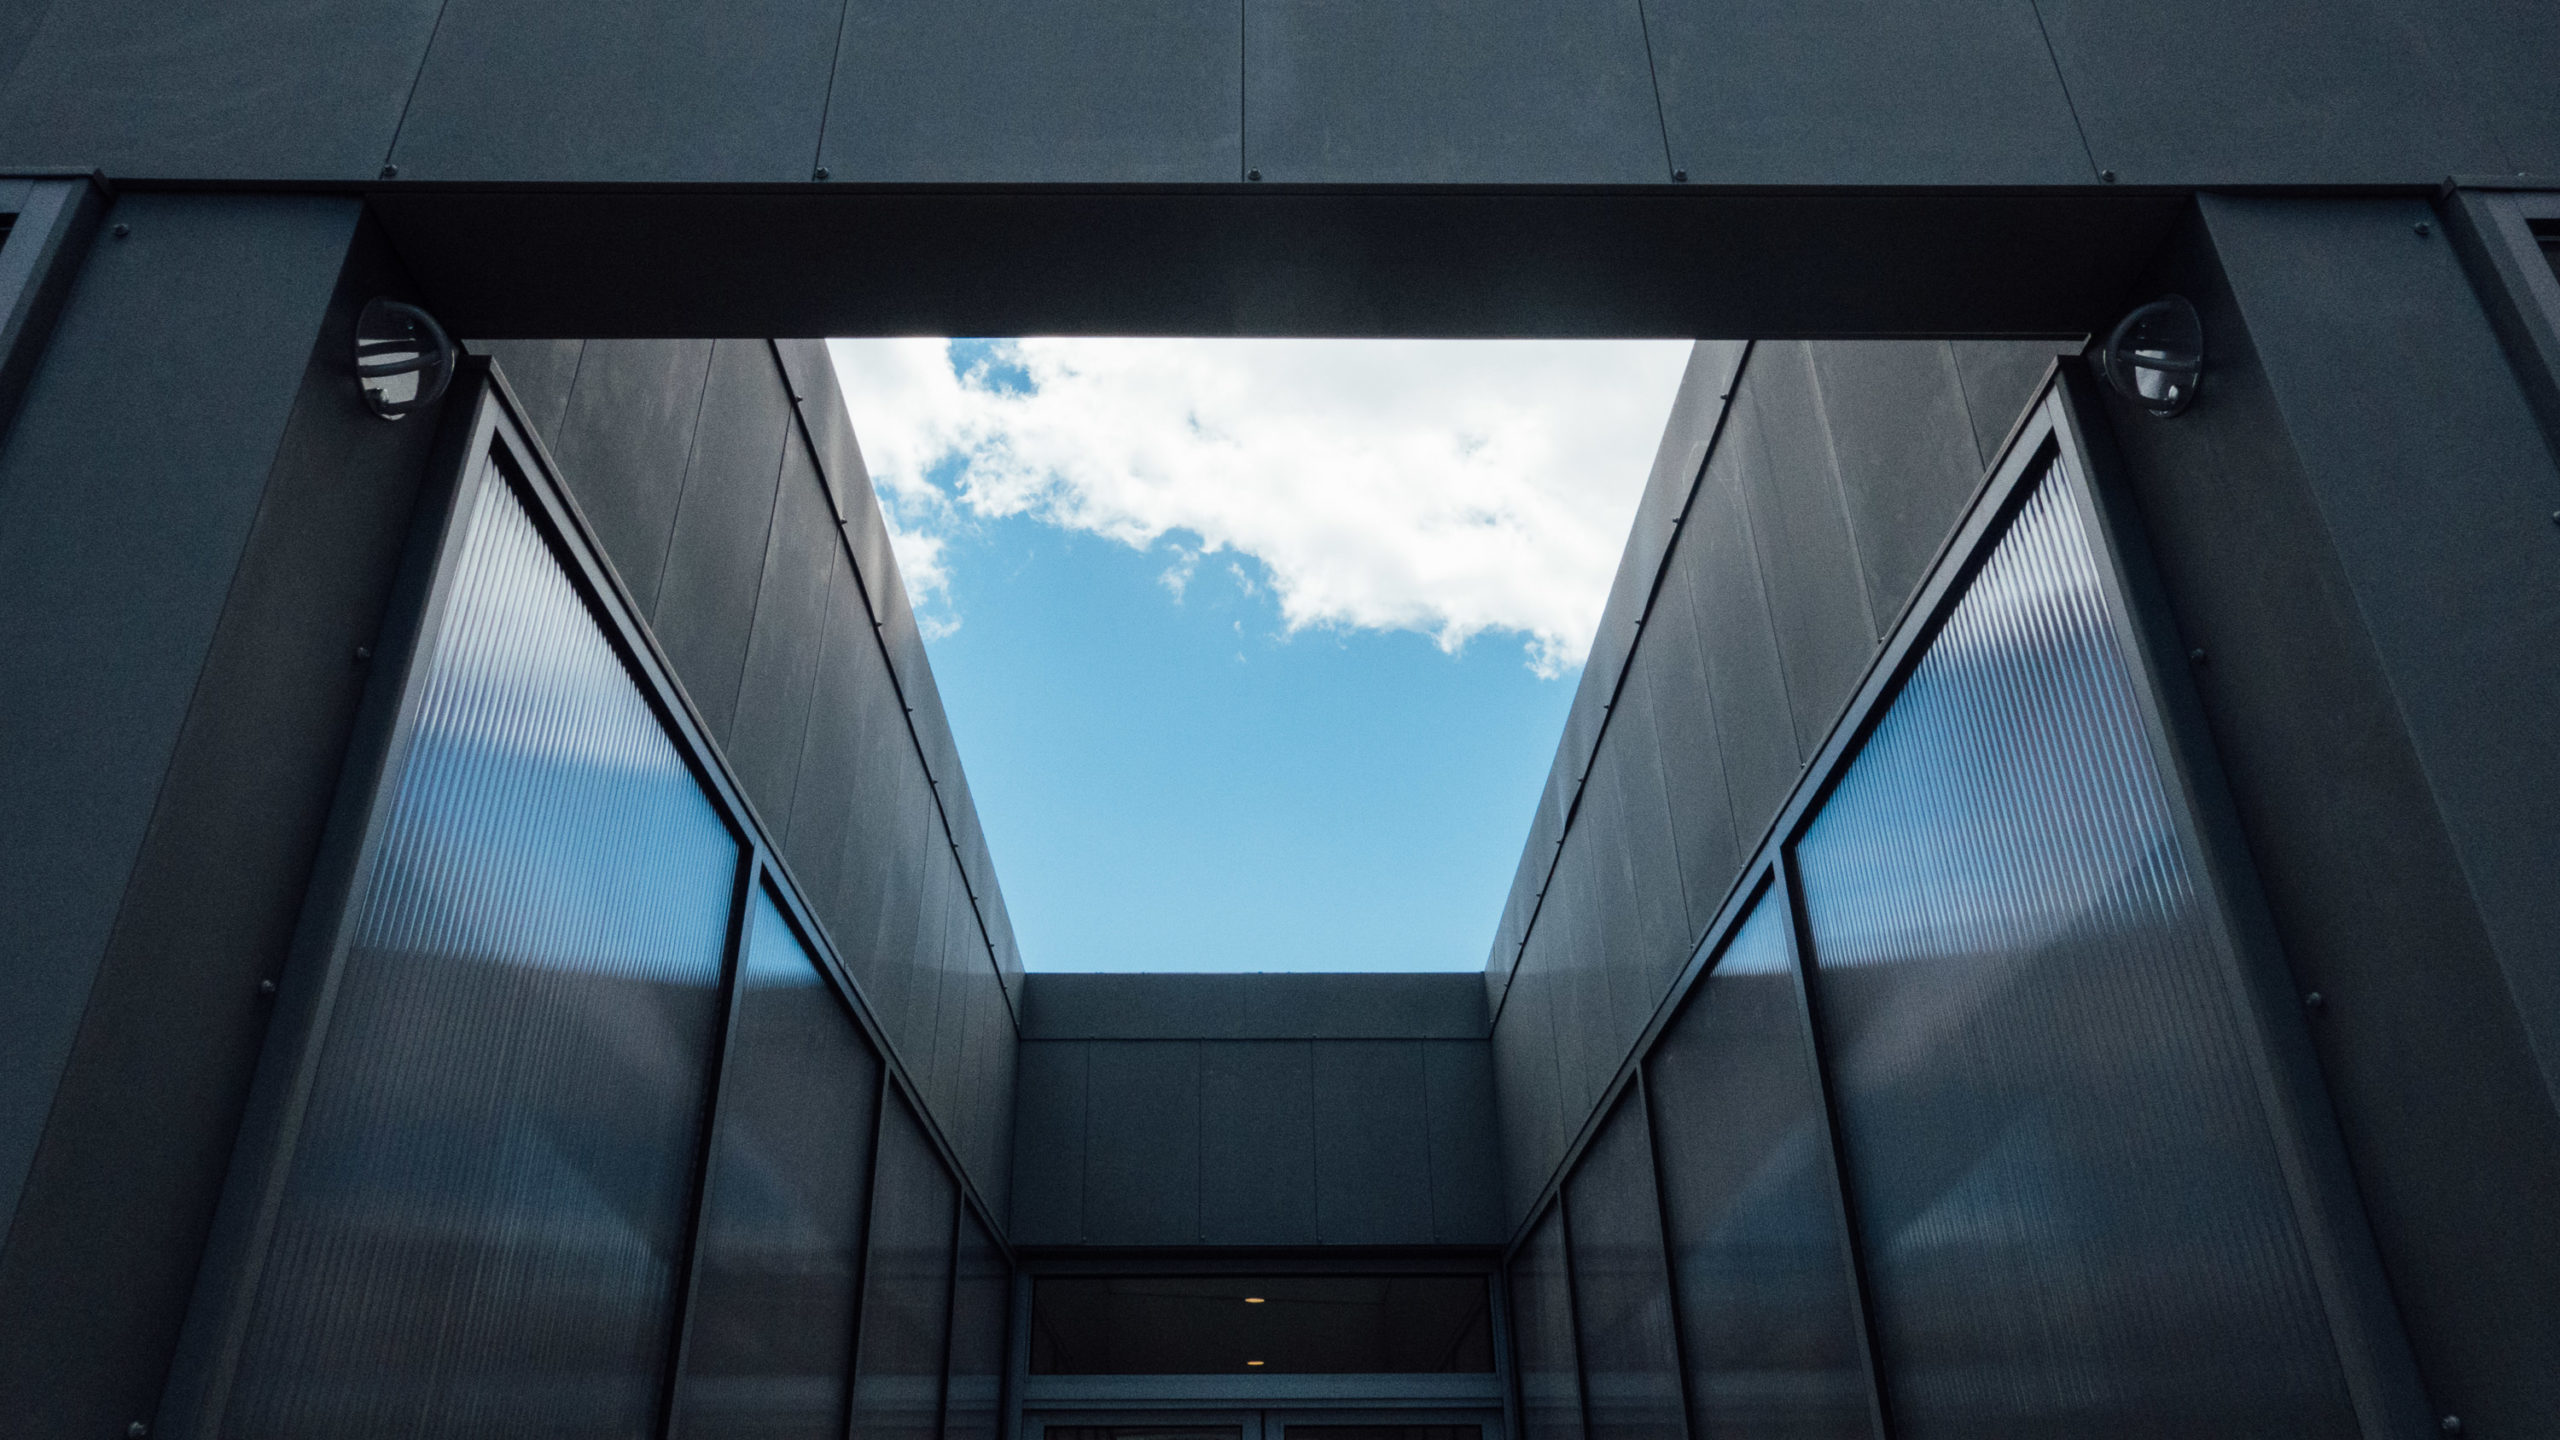 A geometric open roof revealing a blue sky with clouds